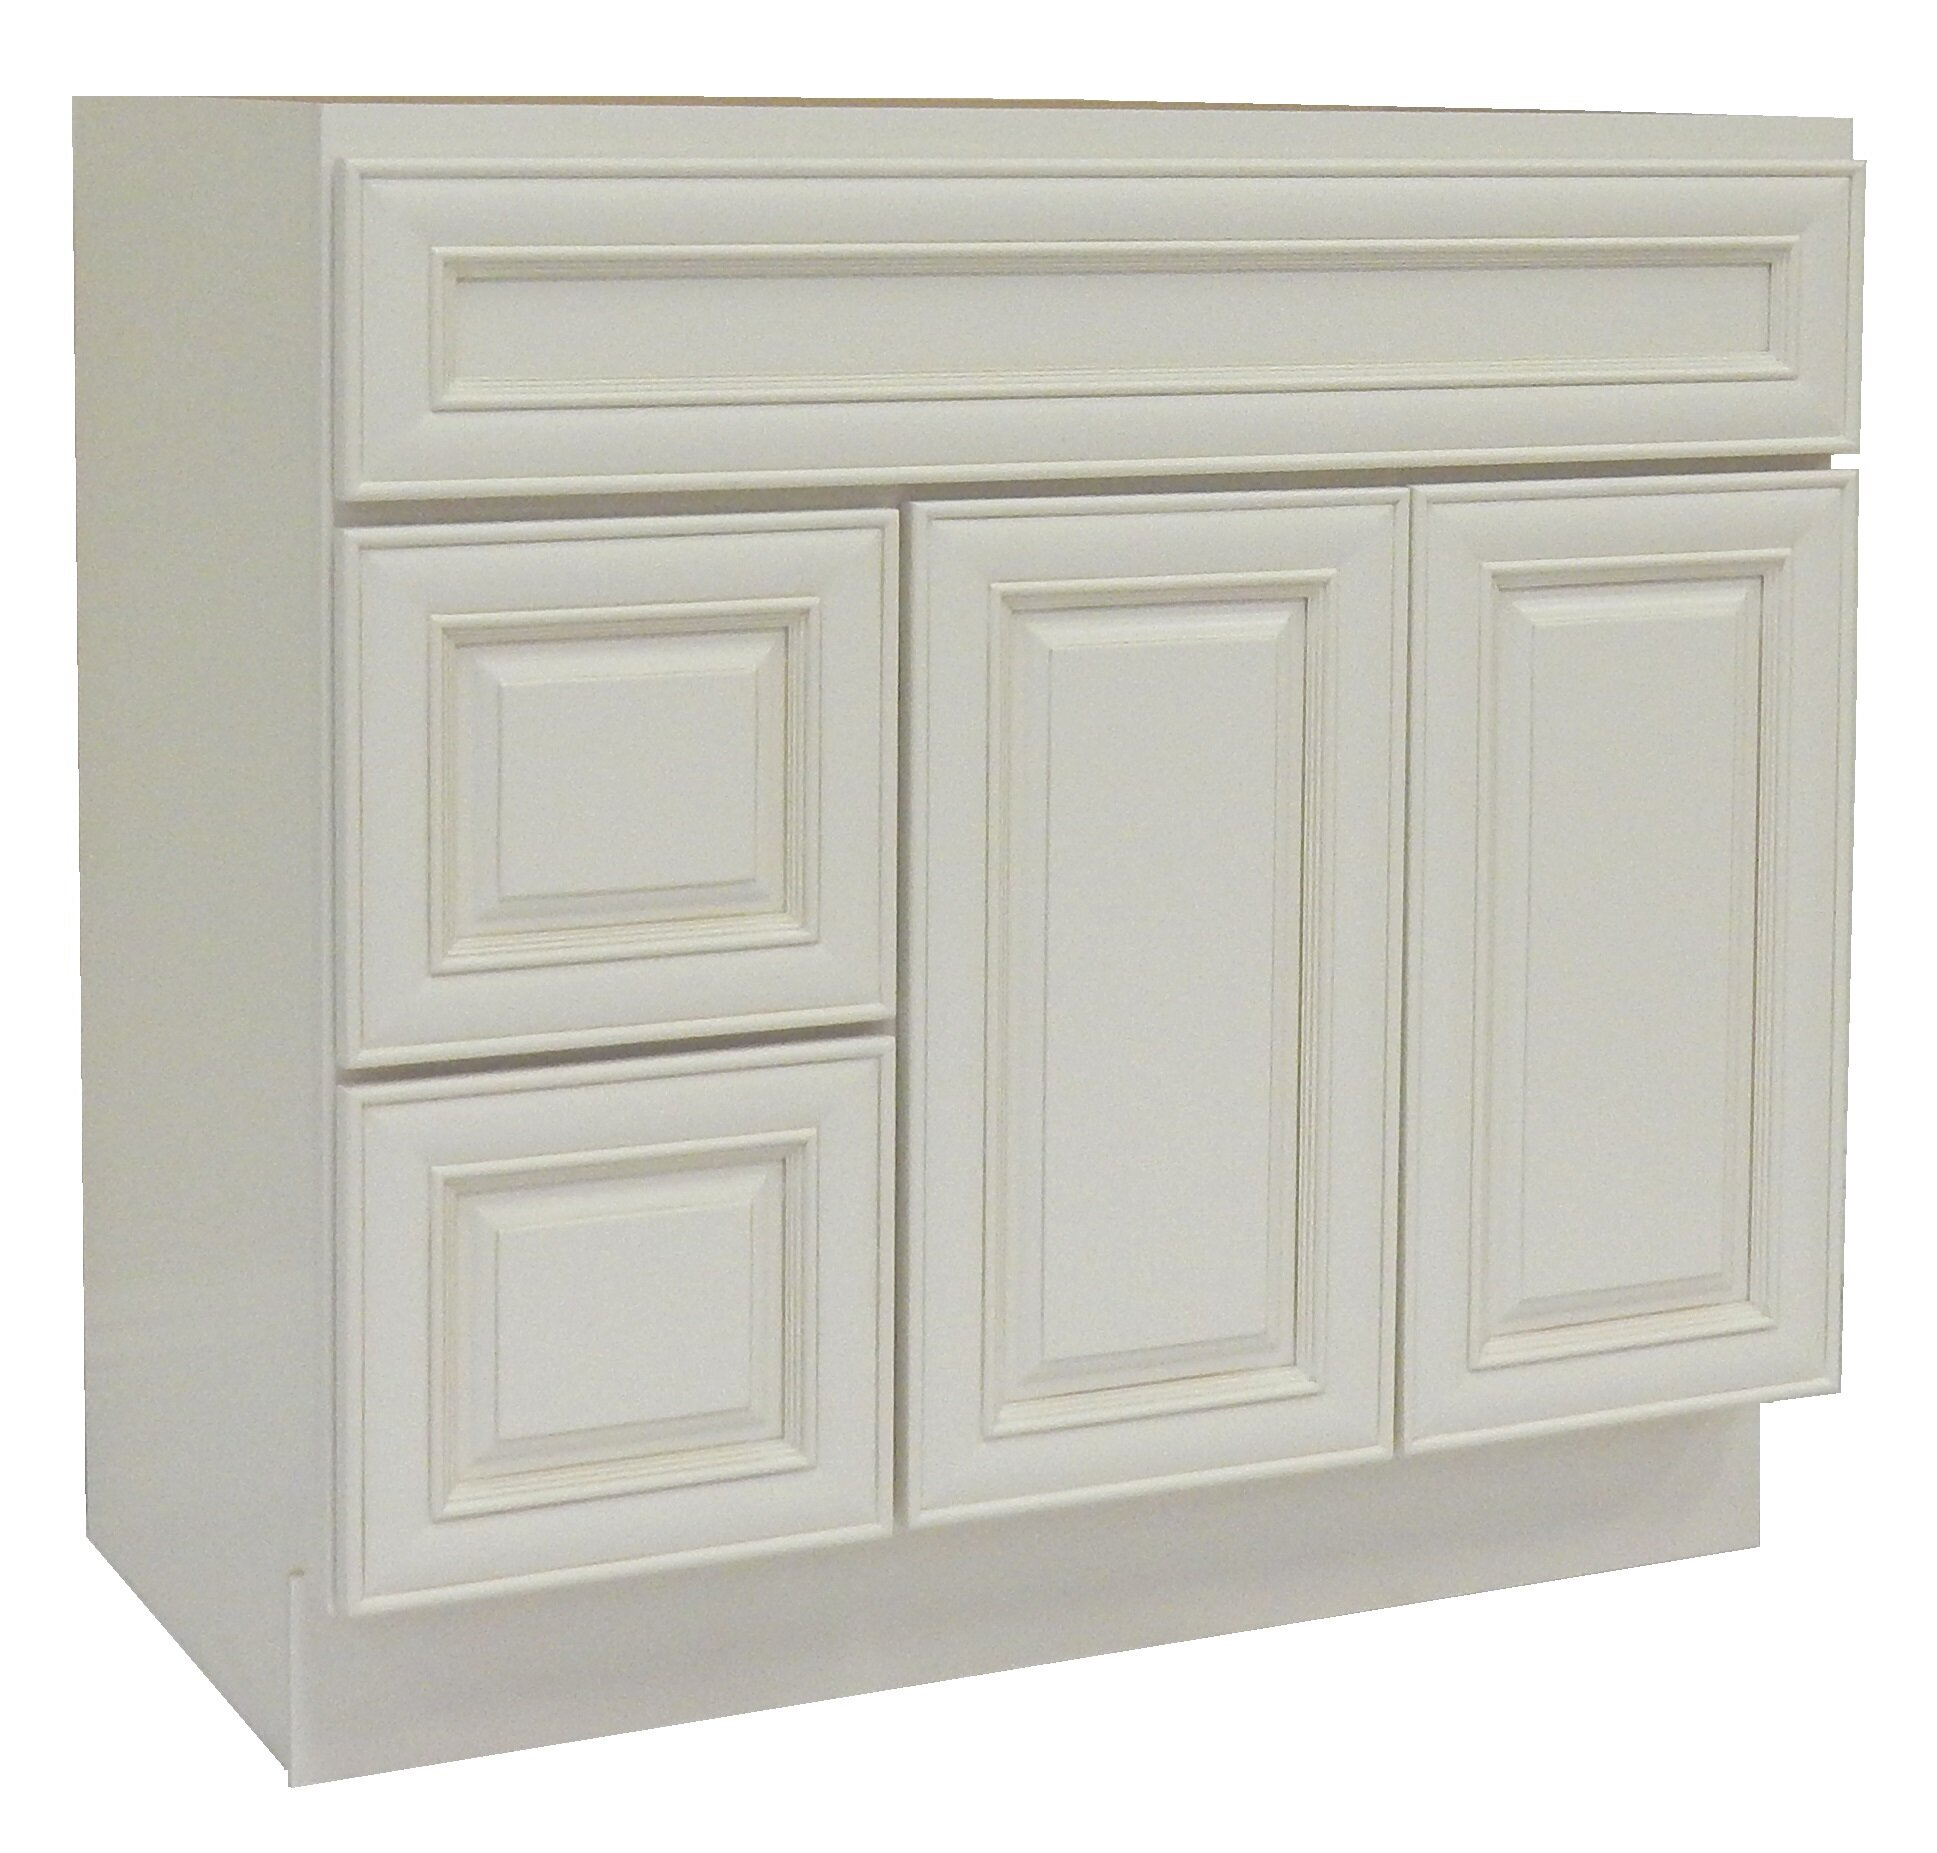 Ngy Stone Cabinet 42 Single Bathroom Vanity Base Only Reviews Wayfair